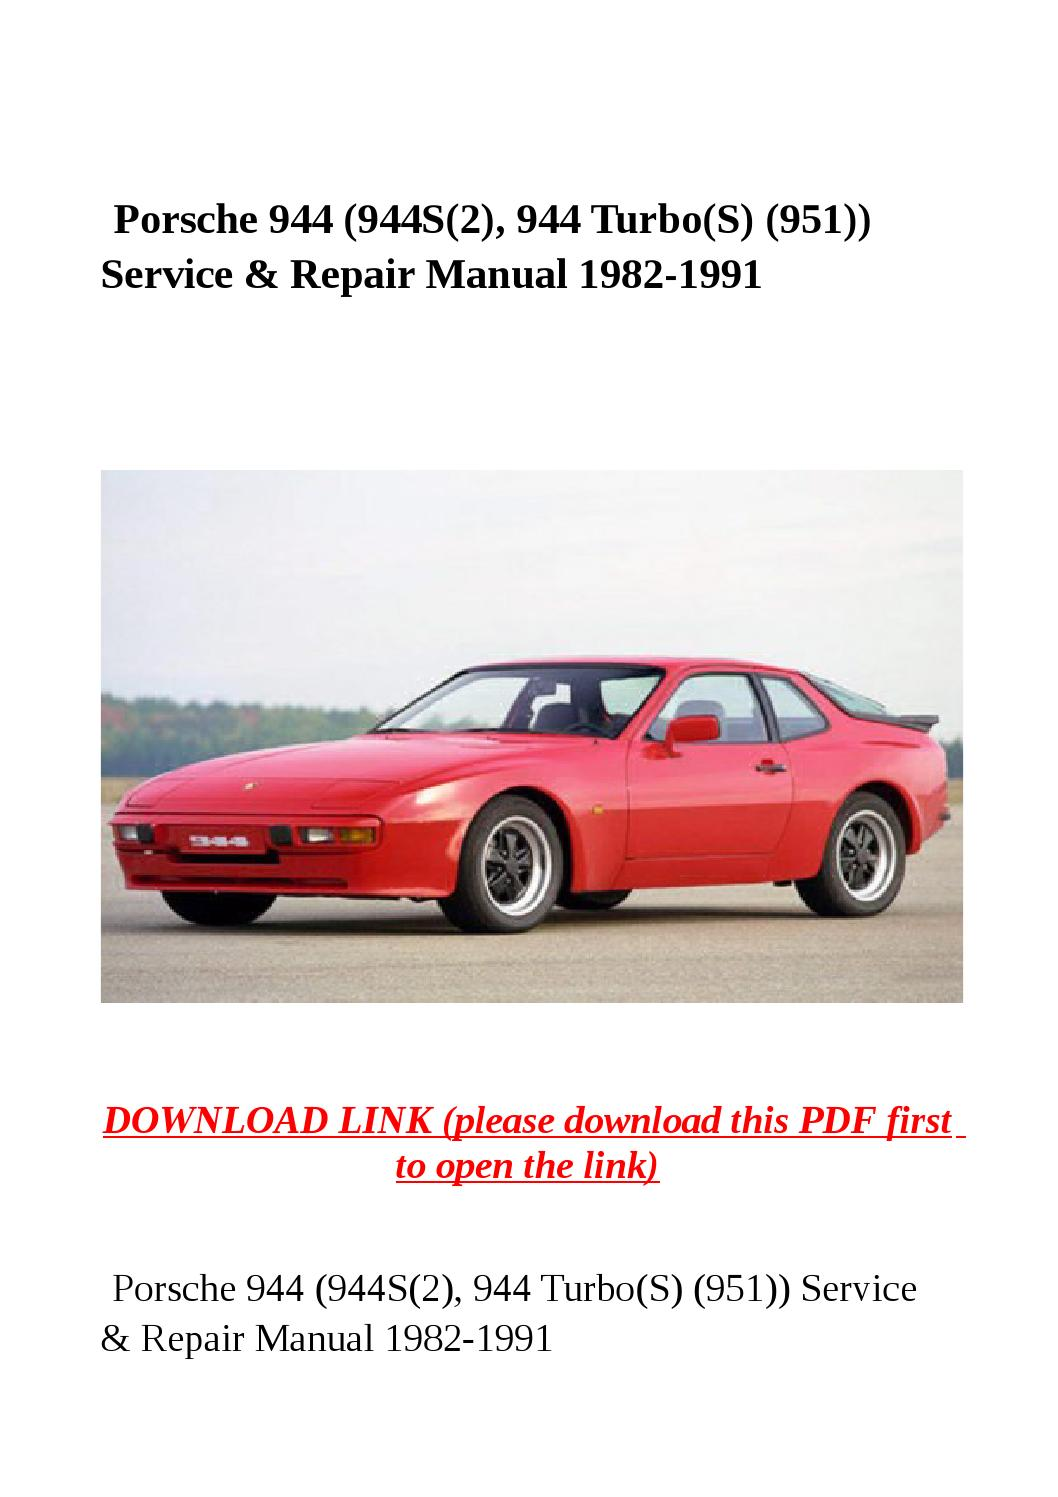 Porsche 944 (944s(2), 944 turbo(s) (951)) service & repair manual 1982 1991  by Dora tang - issuu